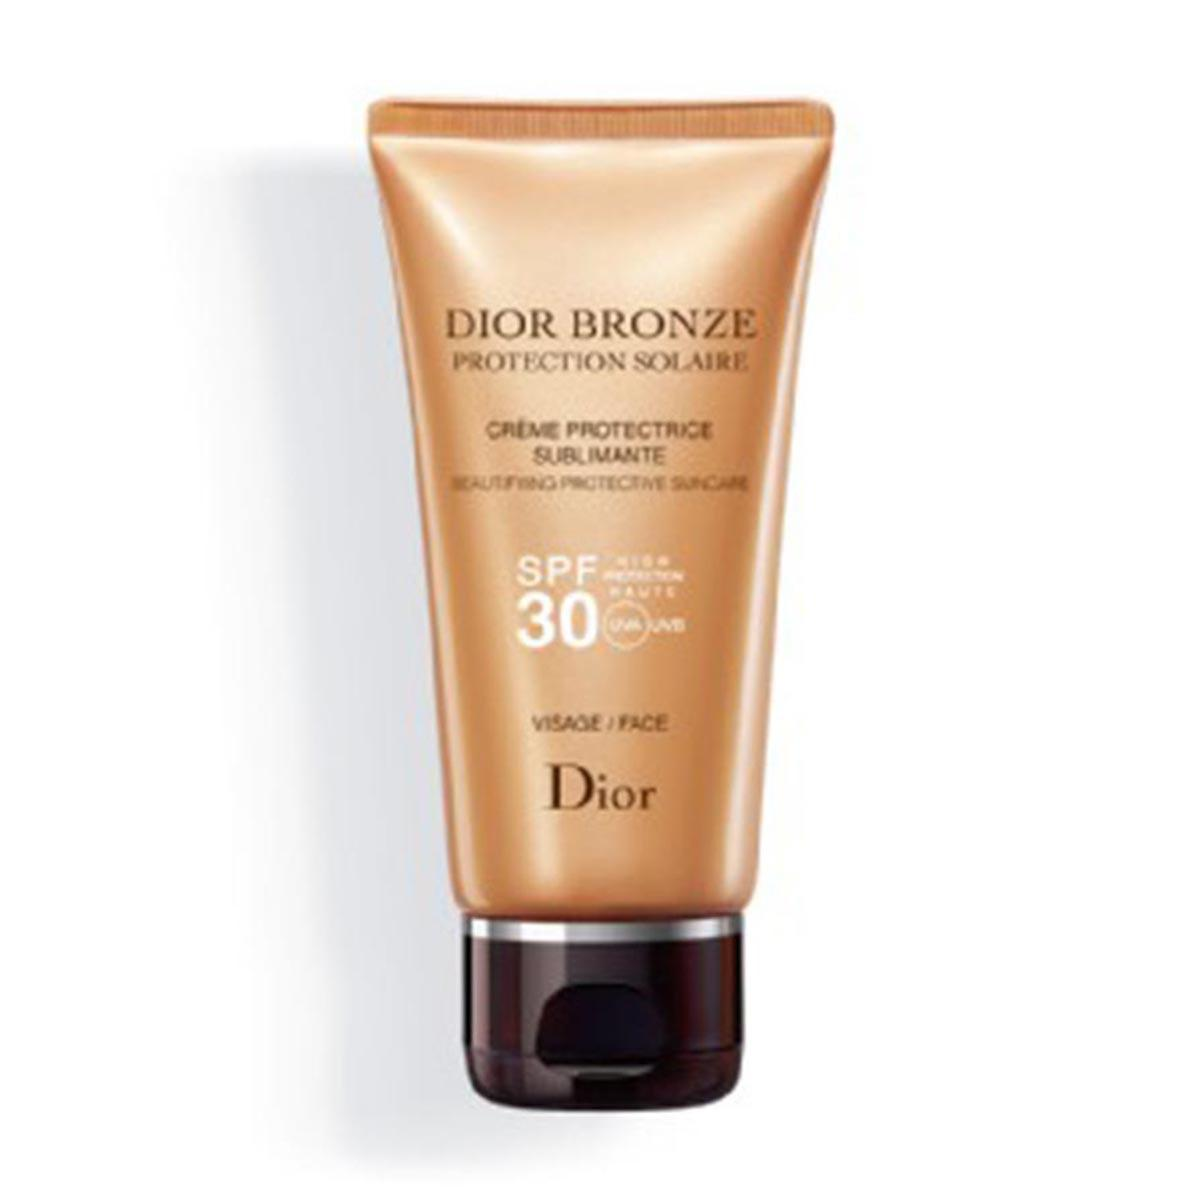 Christian dior fragrances Bronze Protective Creme Sublime Glow Face Spf30 50ml